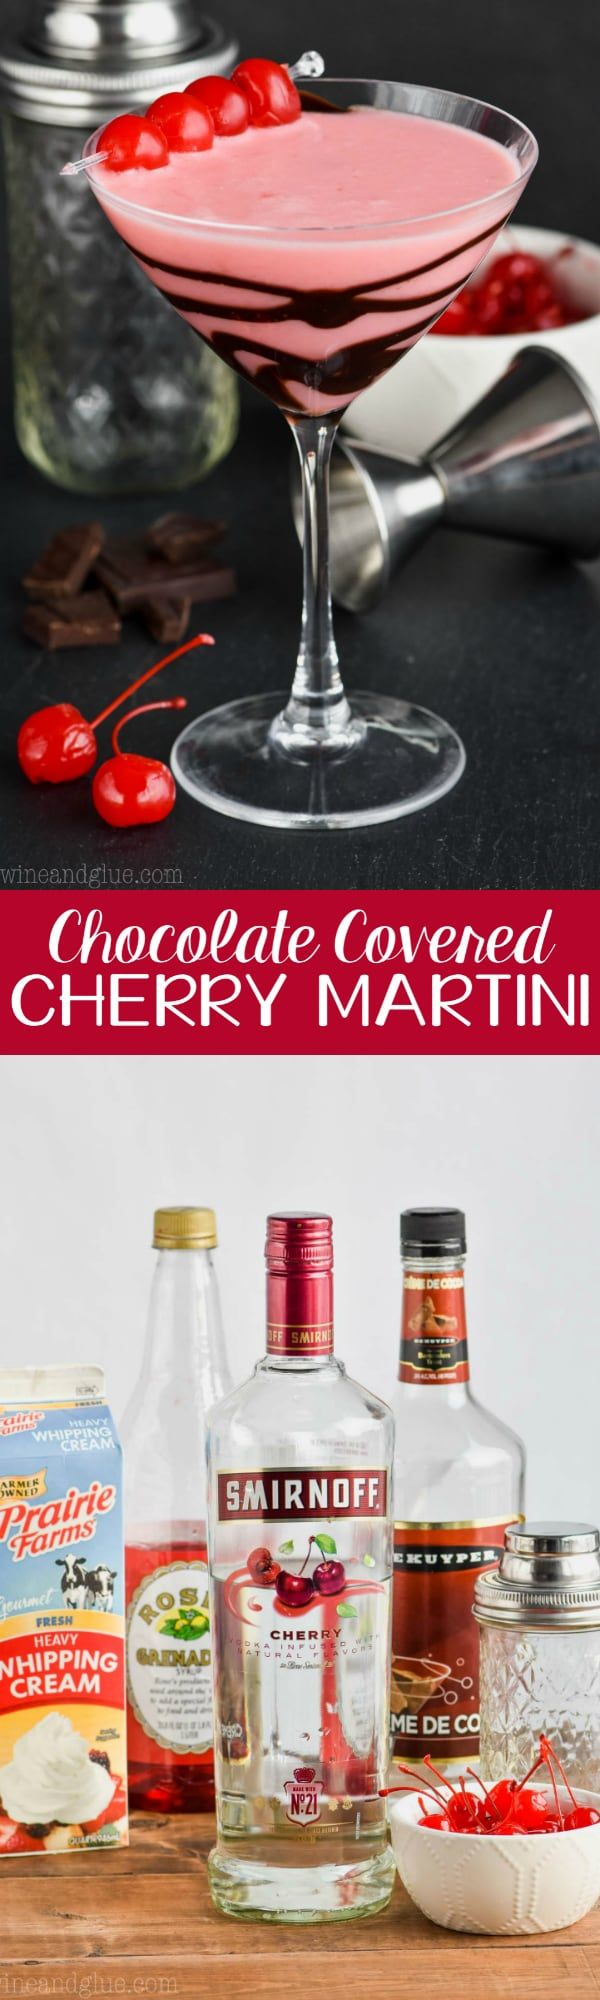 This Chocolate Covered Cherry Martini Is Like Dessert In A Glass A Chocolate Cherry Kiss Martini Chocolate Covered Cherries Cherry Martini Recipe Cherry Vodka